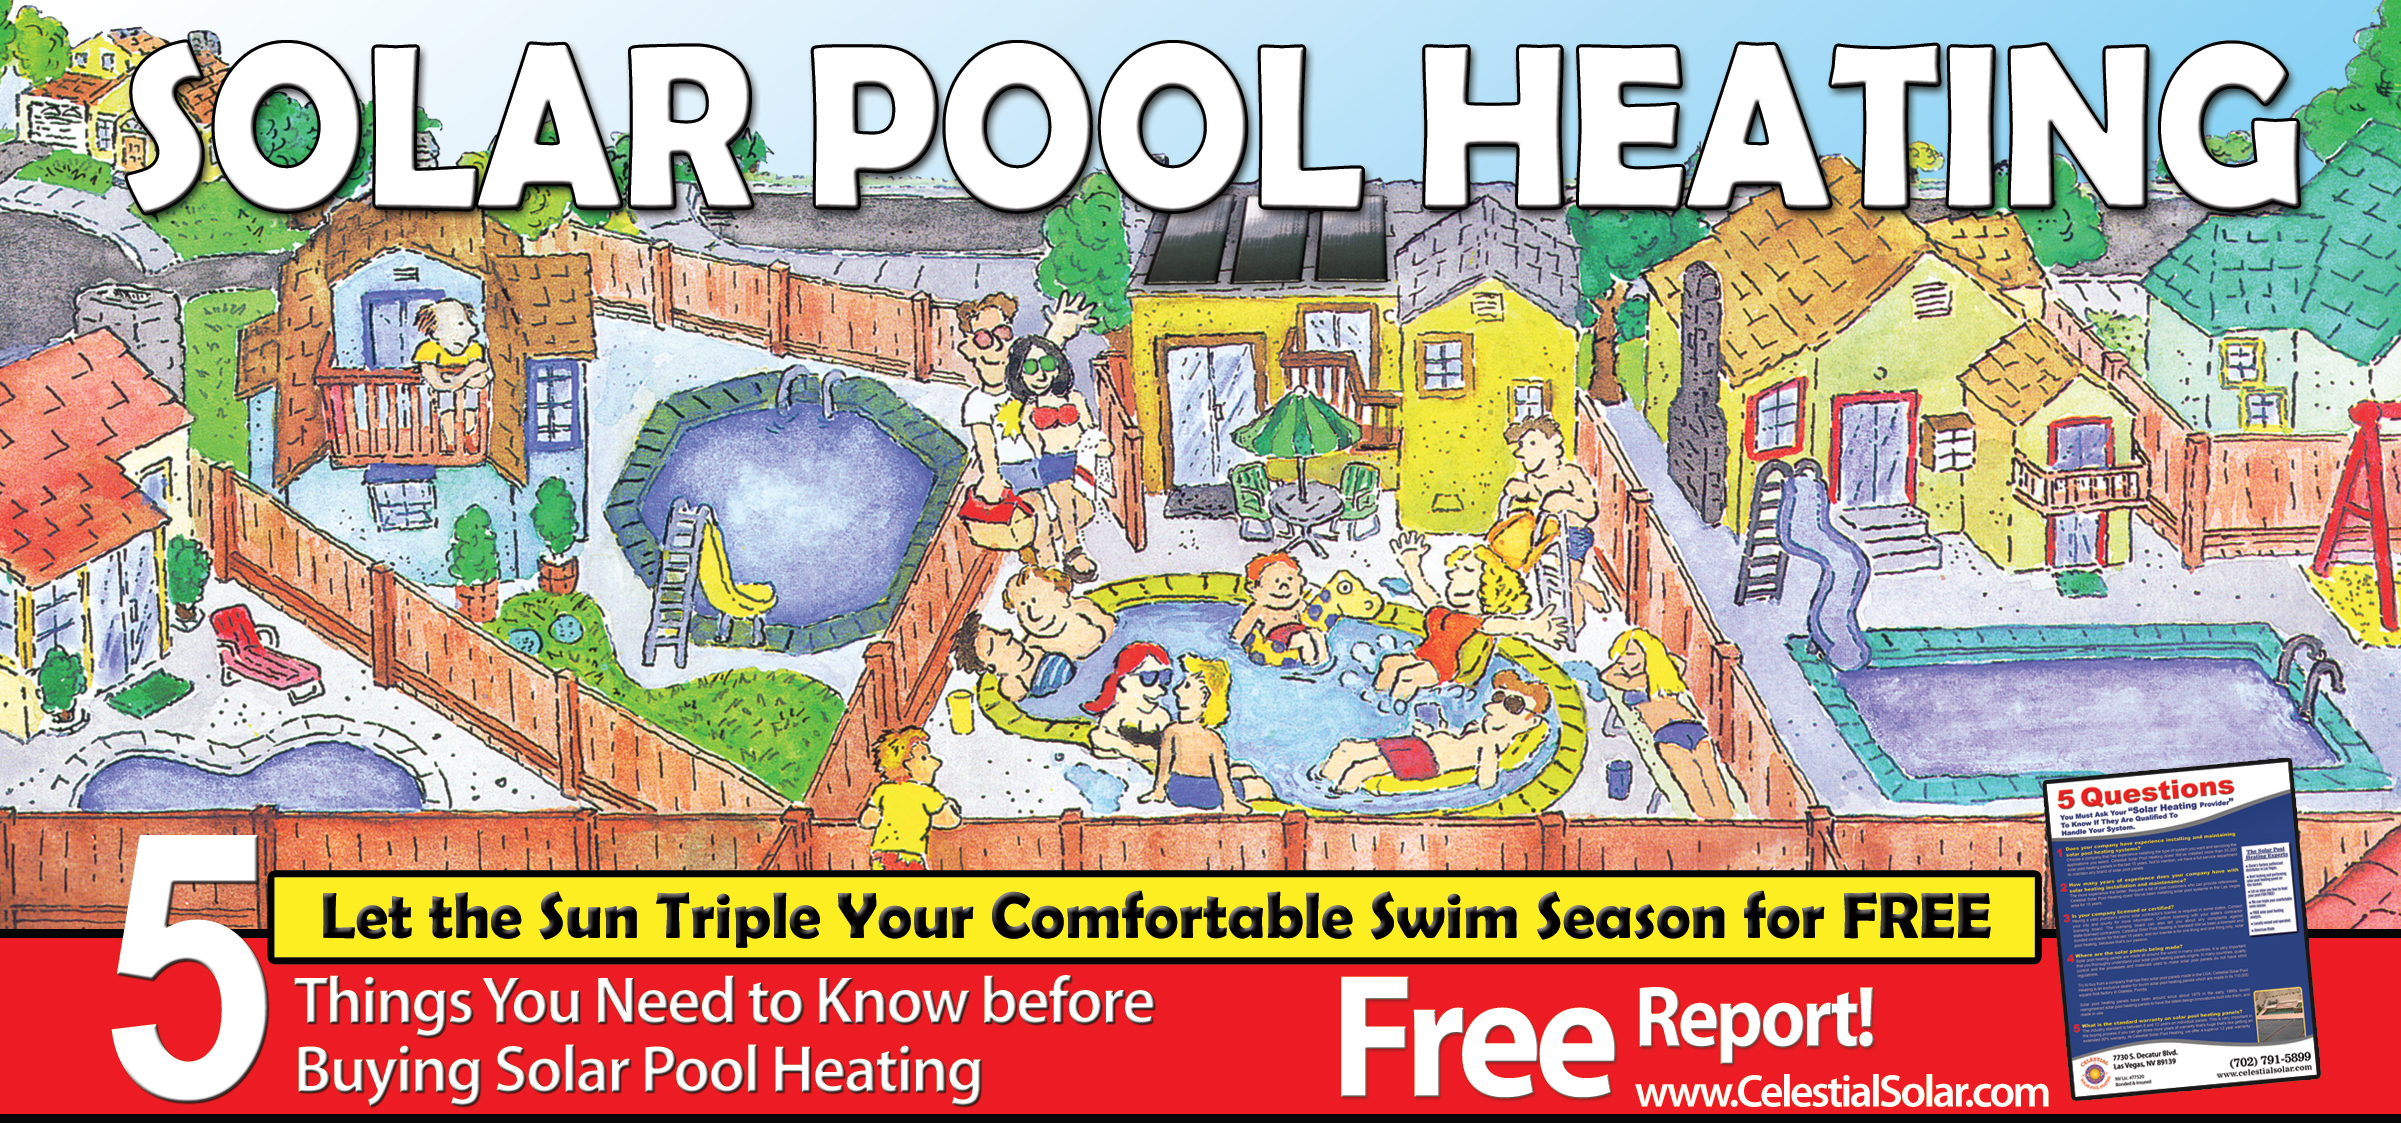 Solar Pool Heating San Diego Triple Your Comfortable